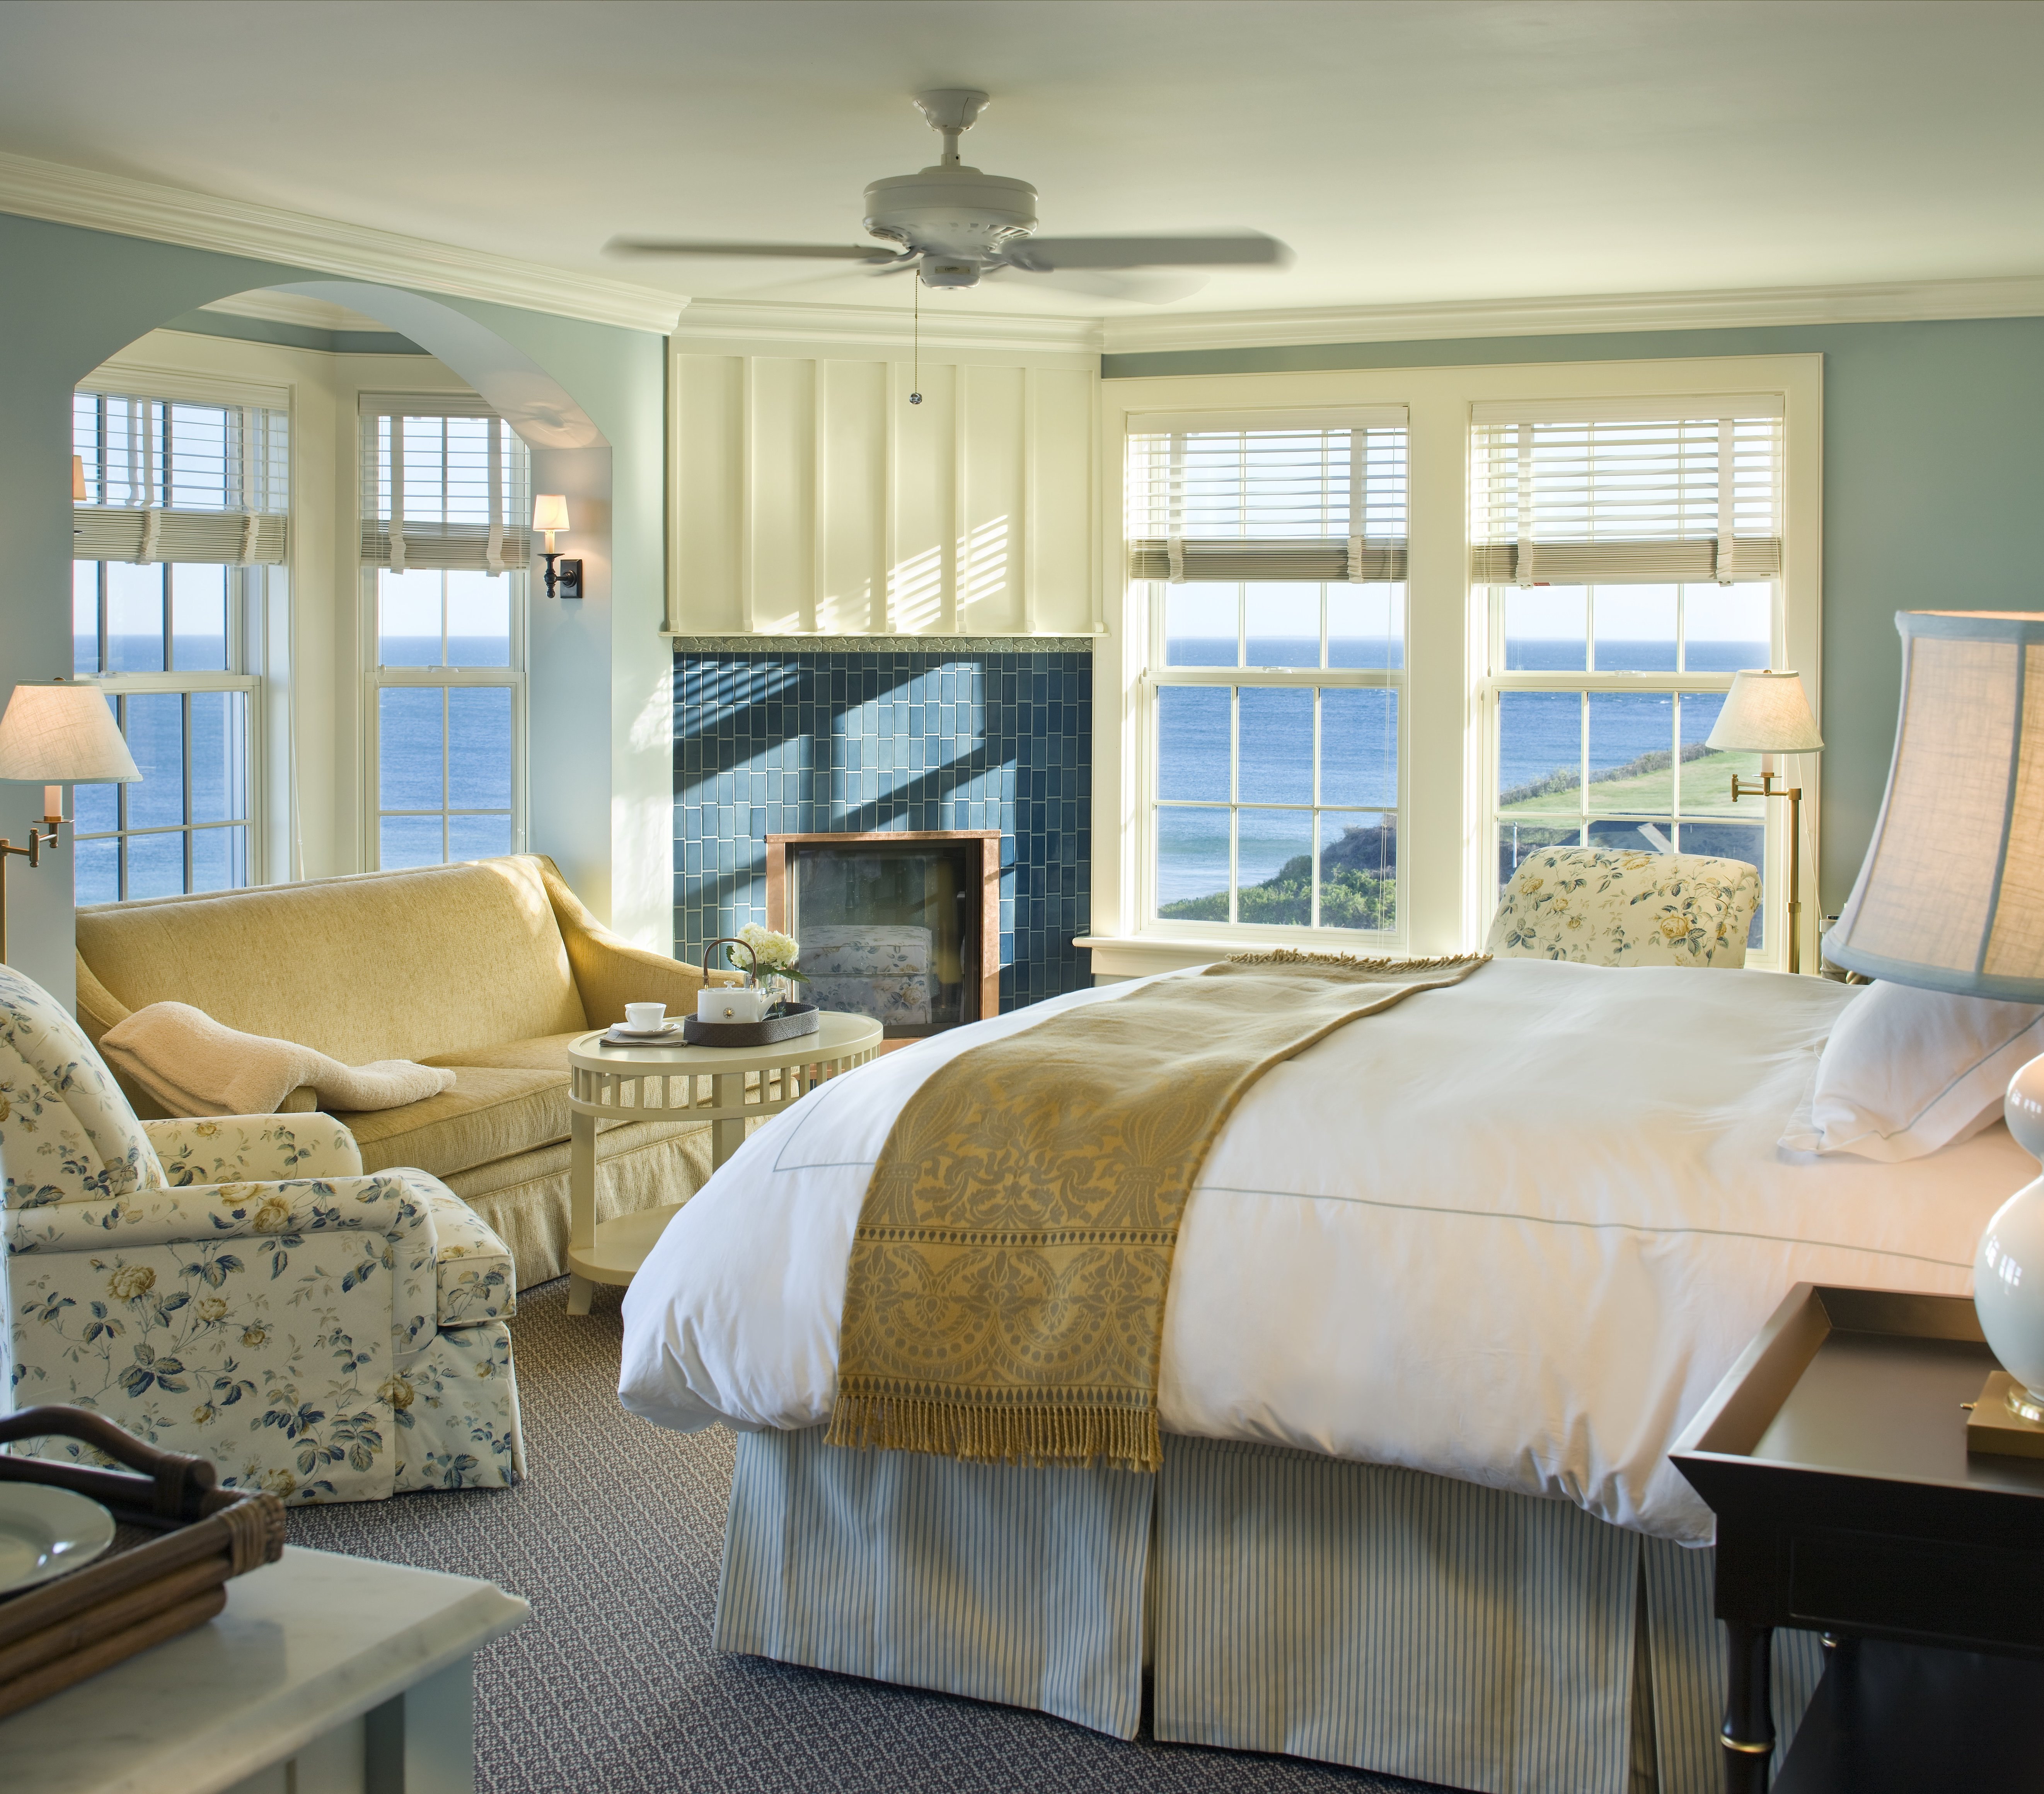 Island View Apartments Home: No. 3 Ocean House In Watch Hill, Rhode Island